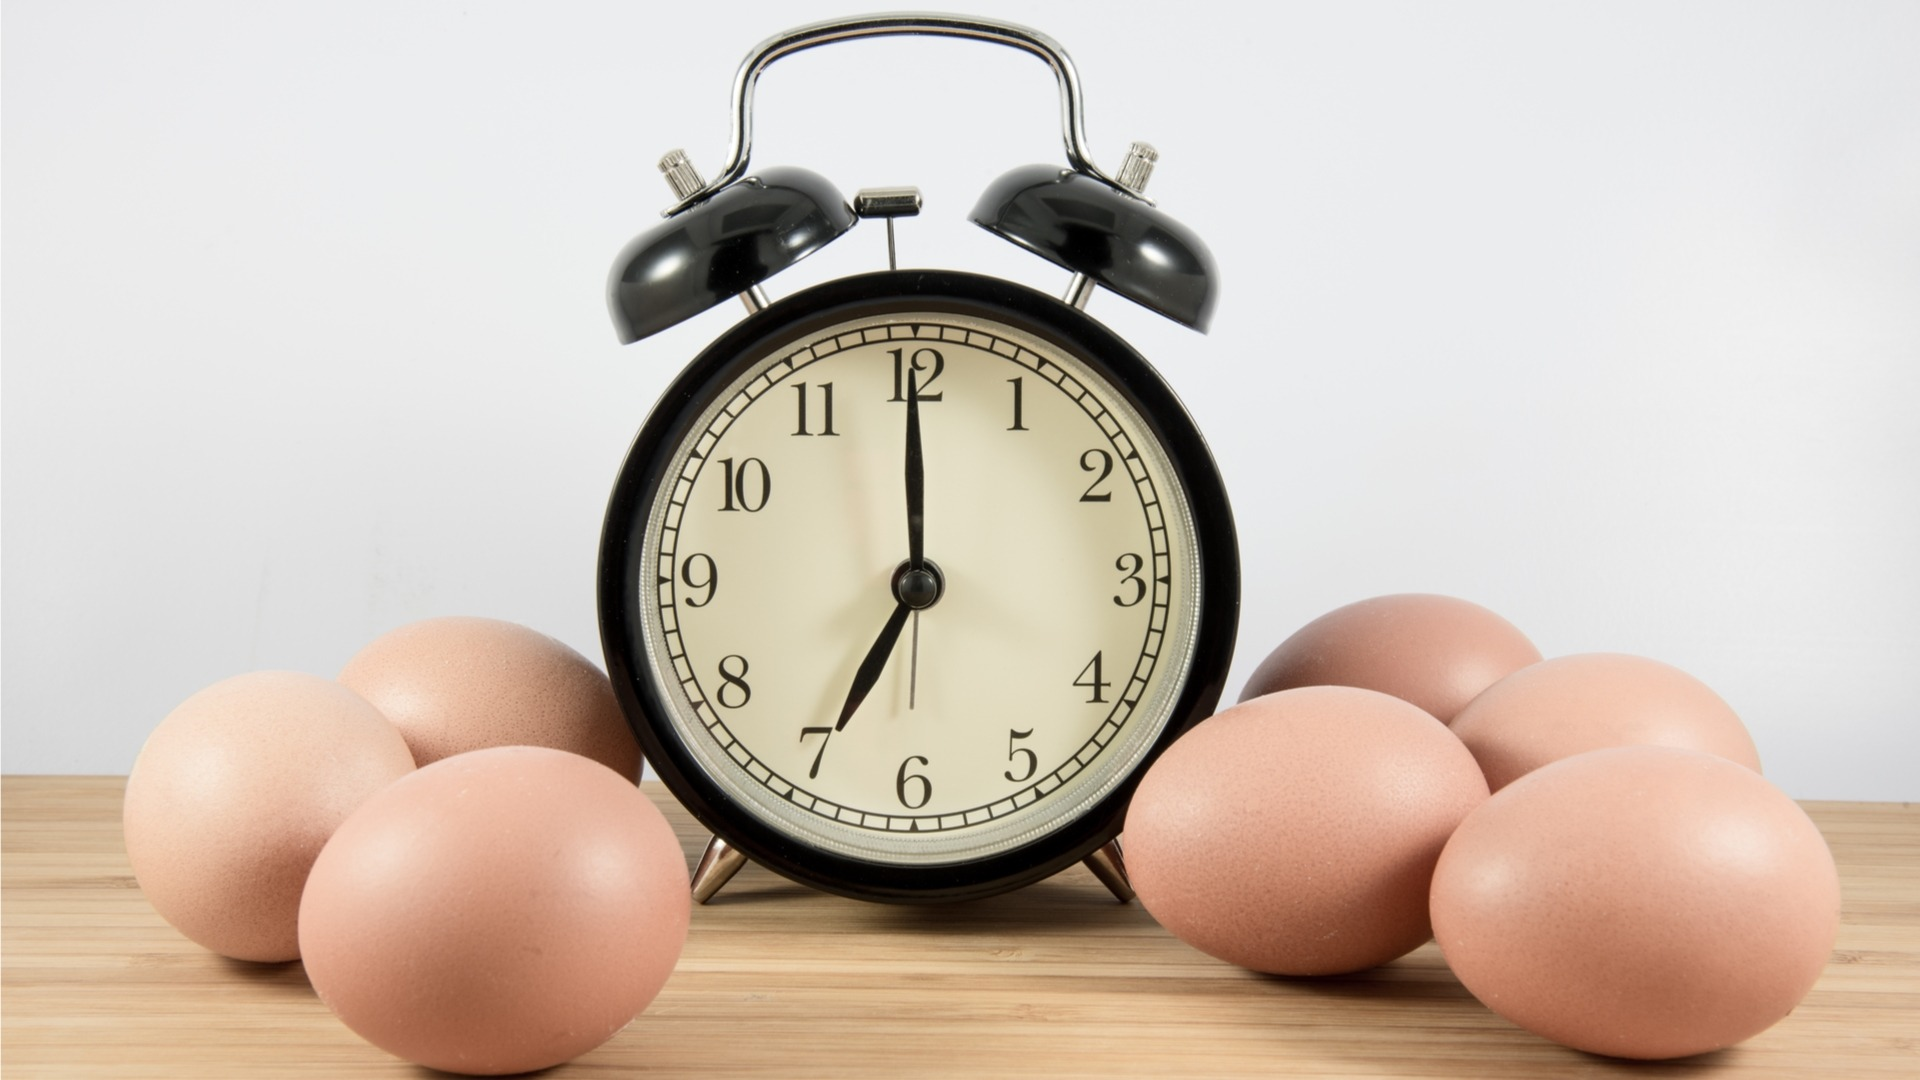 Clock and eggs